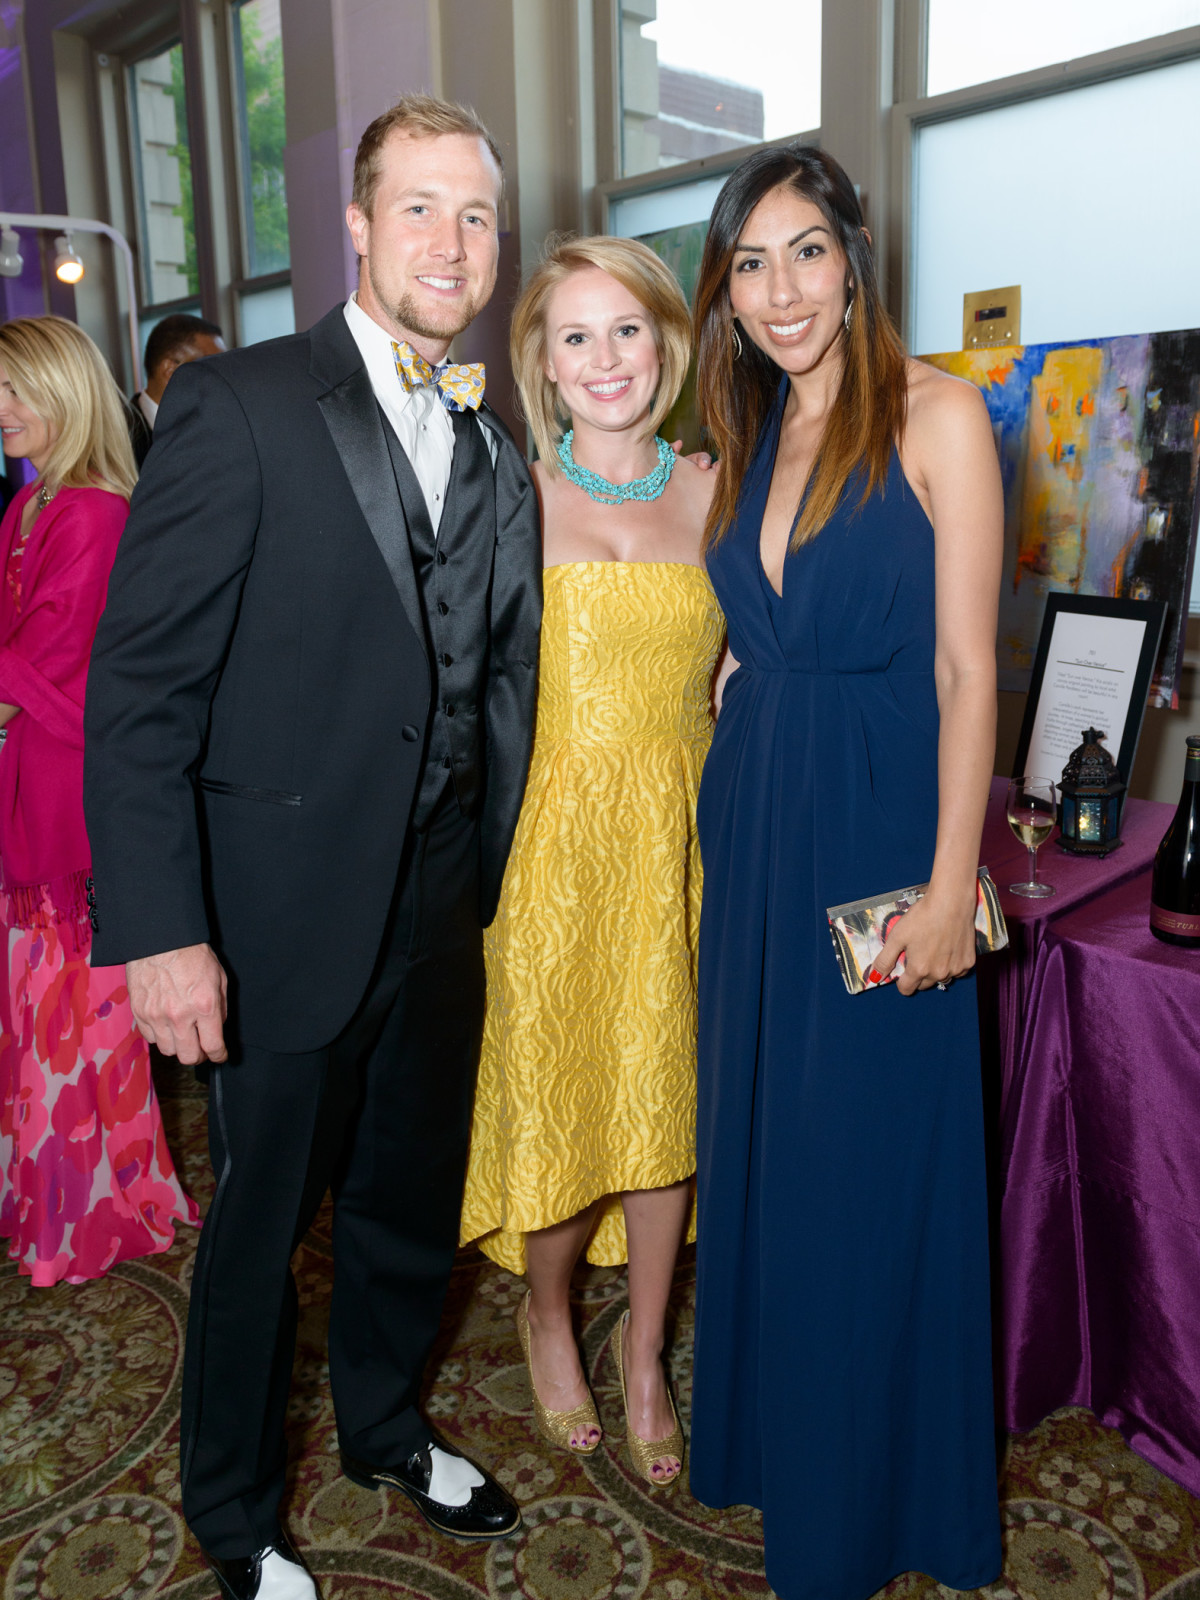 SPA, Gala April 2016, Cahal Mowery, Mallory Cheatham and Marcela Maxson